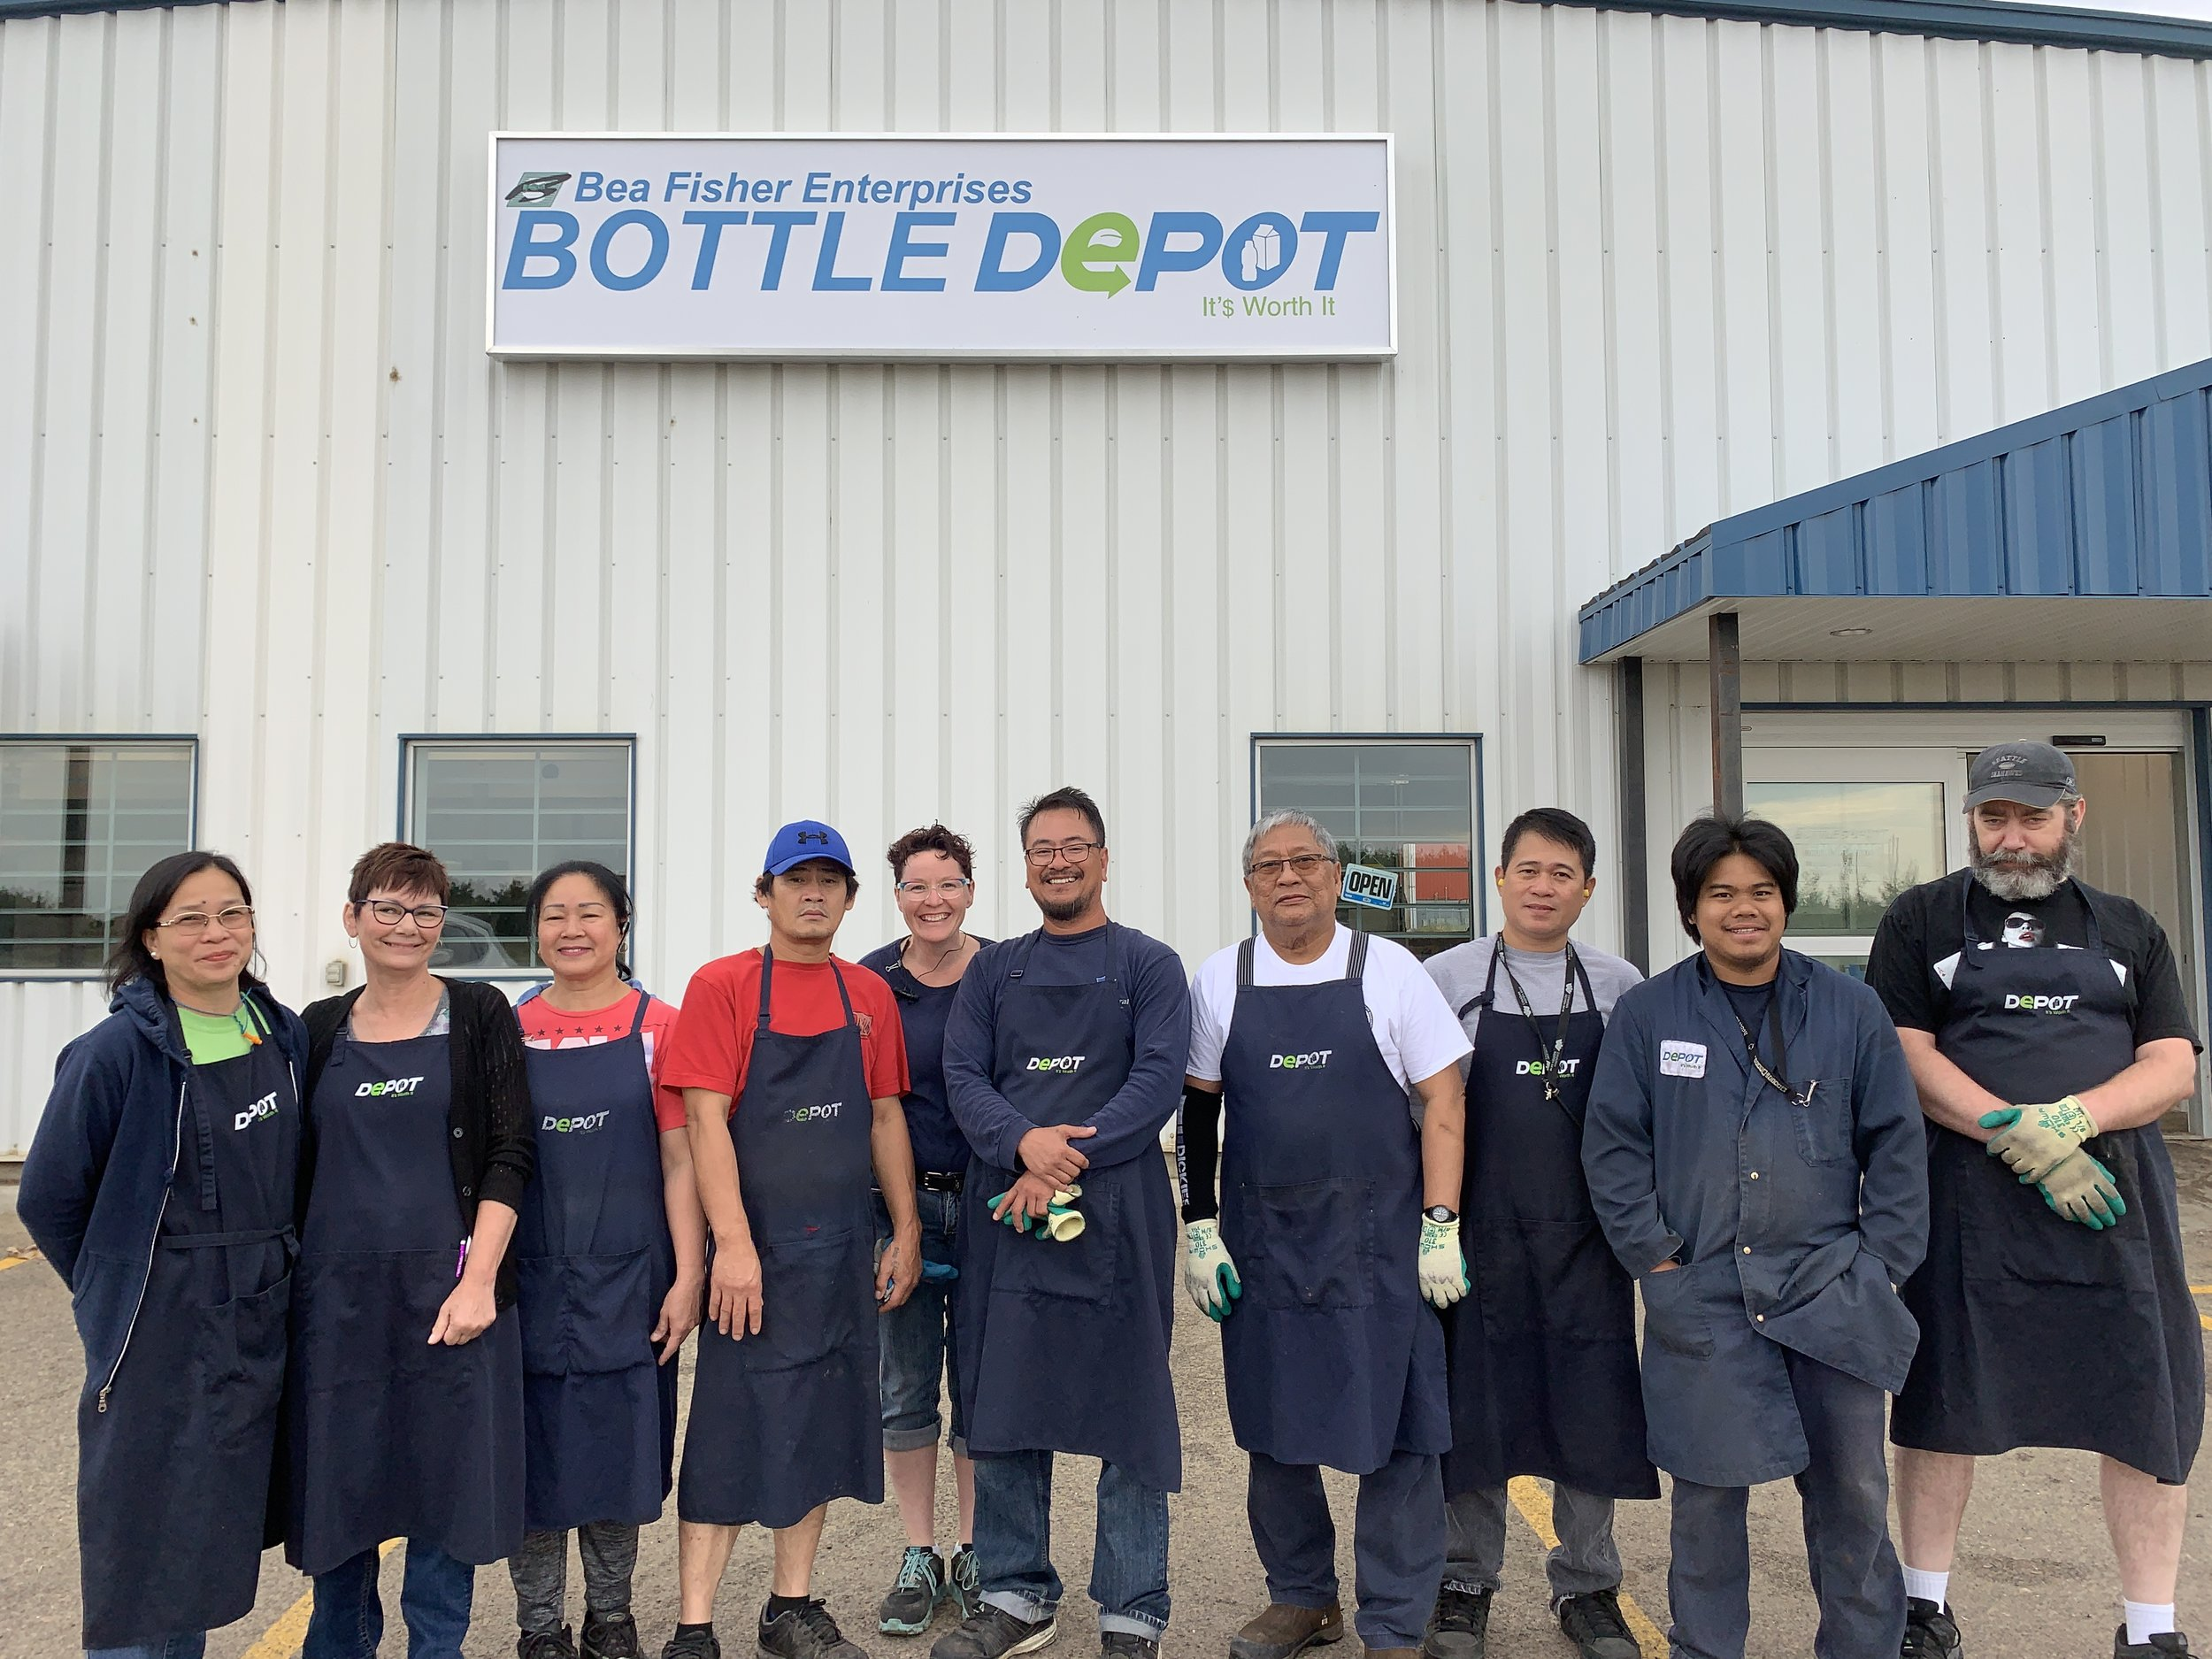 Bea Fisher Enterprises Inc Bottle Depot (Lloydminster)